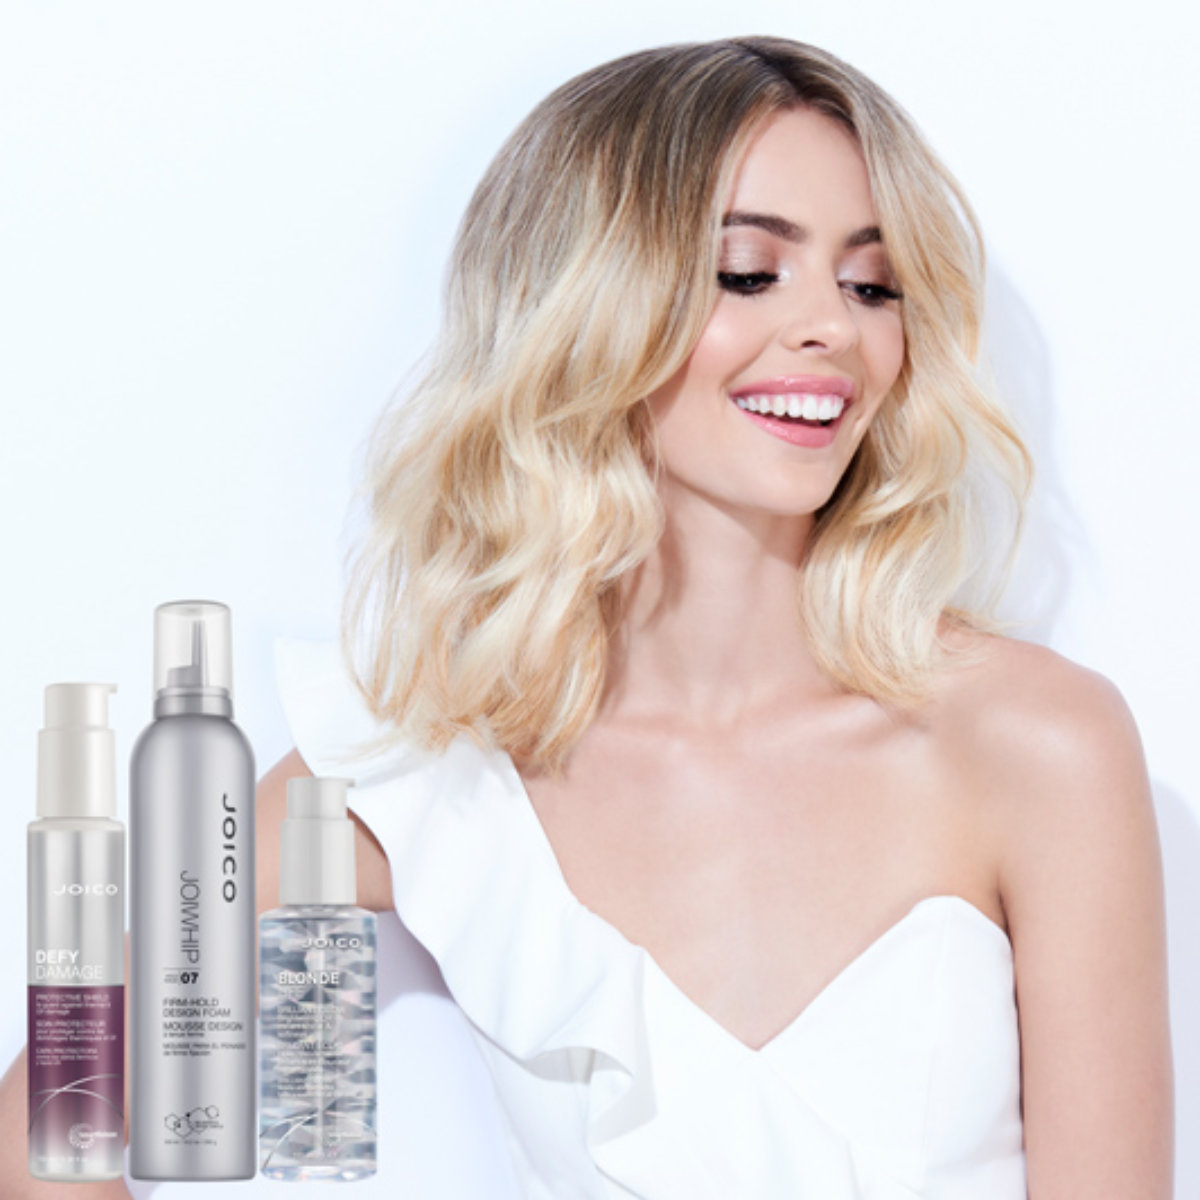 Blonde life model with joico styling products